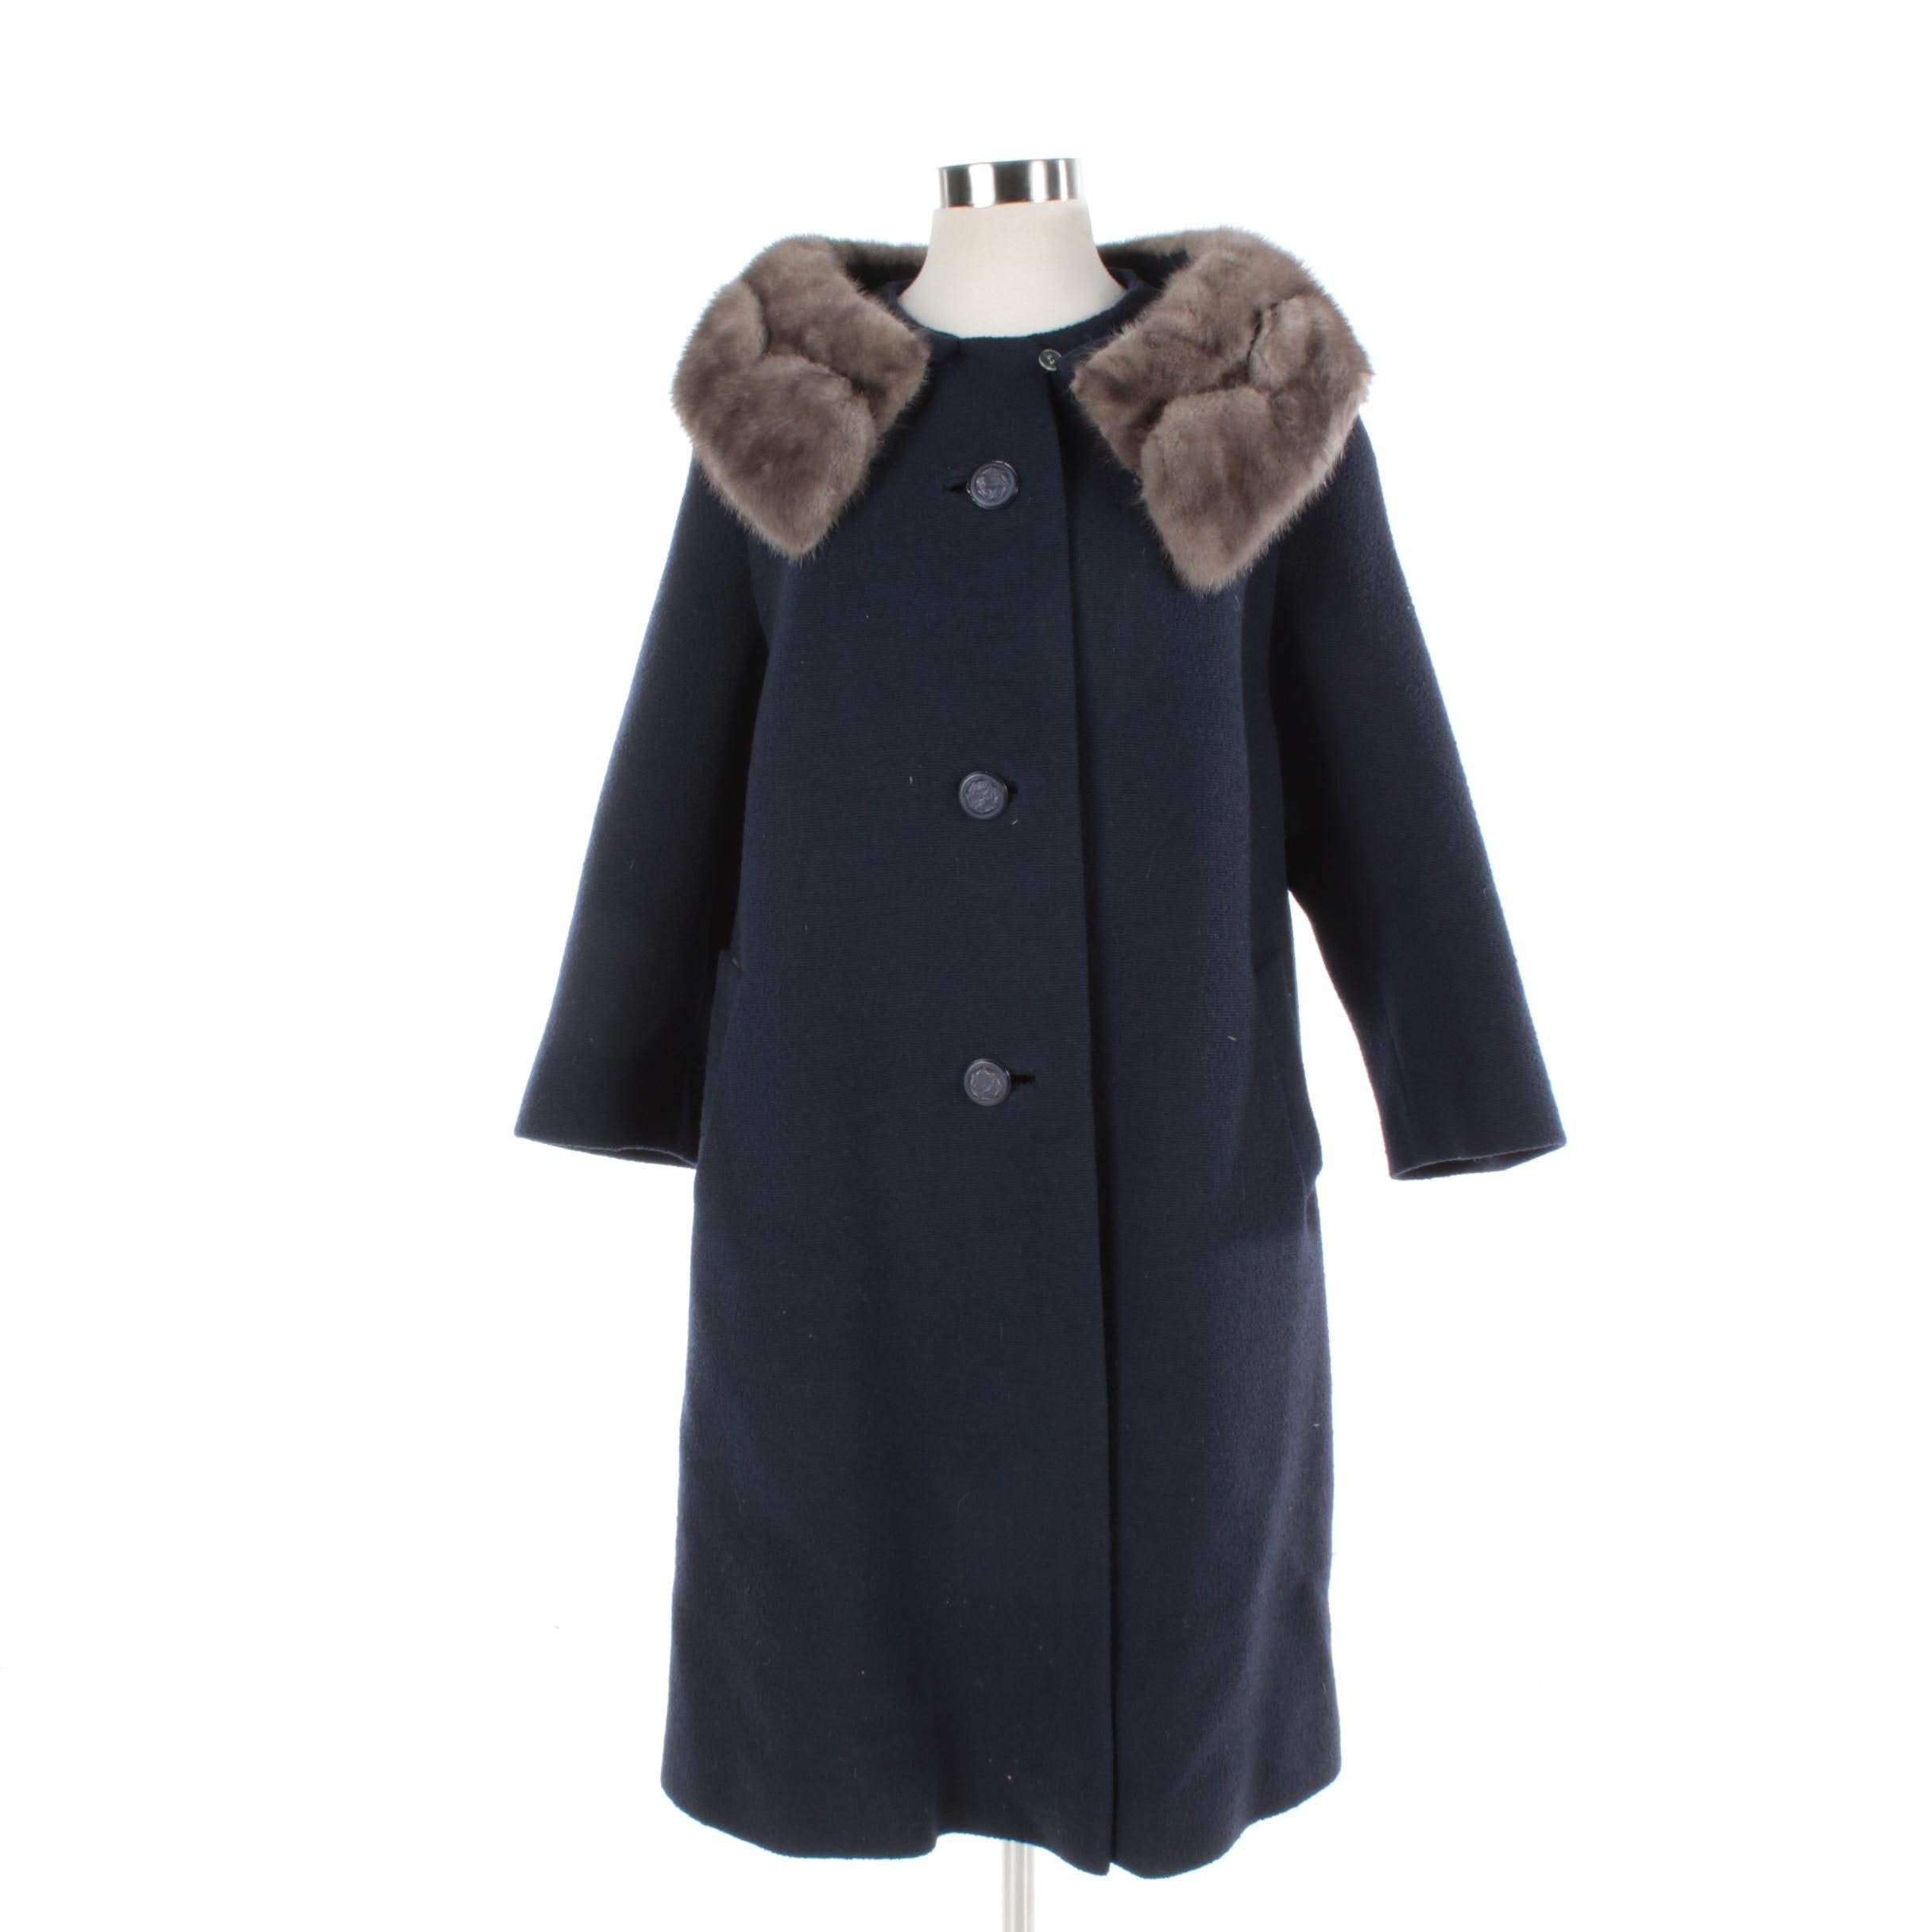 Women's Navy Blue Wool Coat with Gray Mink Fur Collar